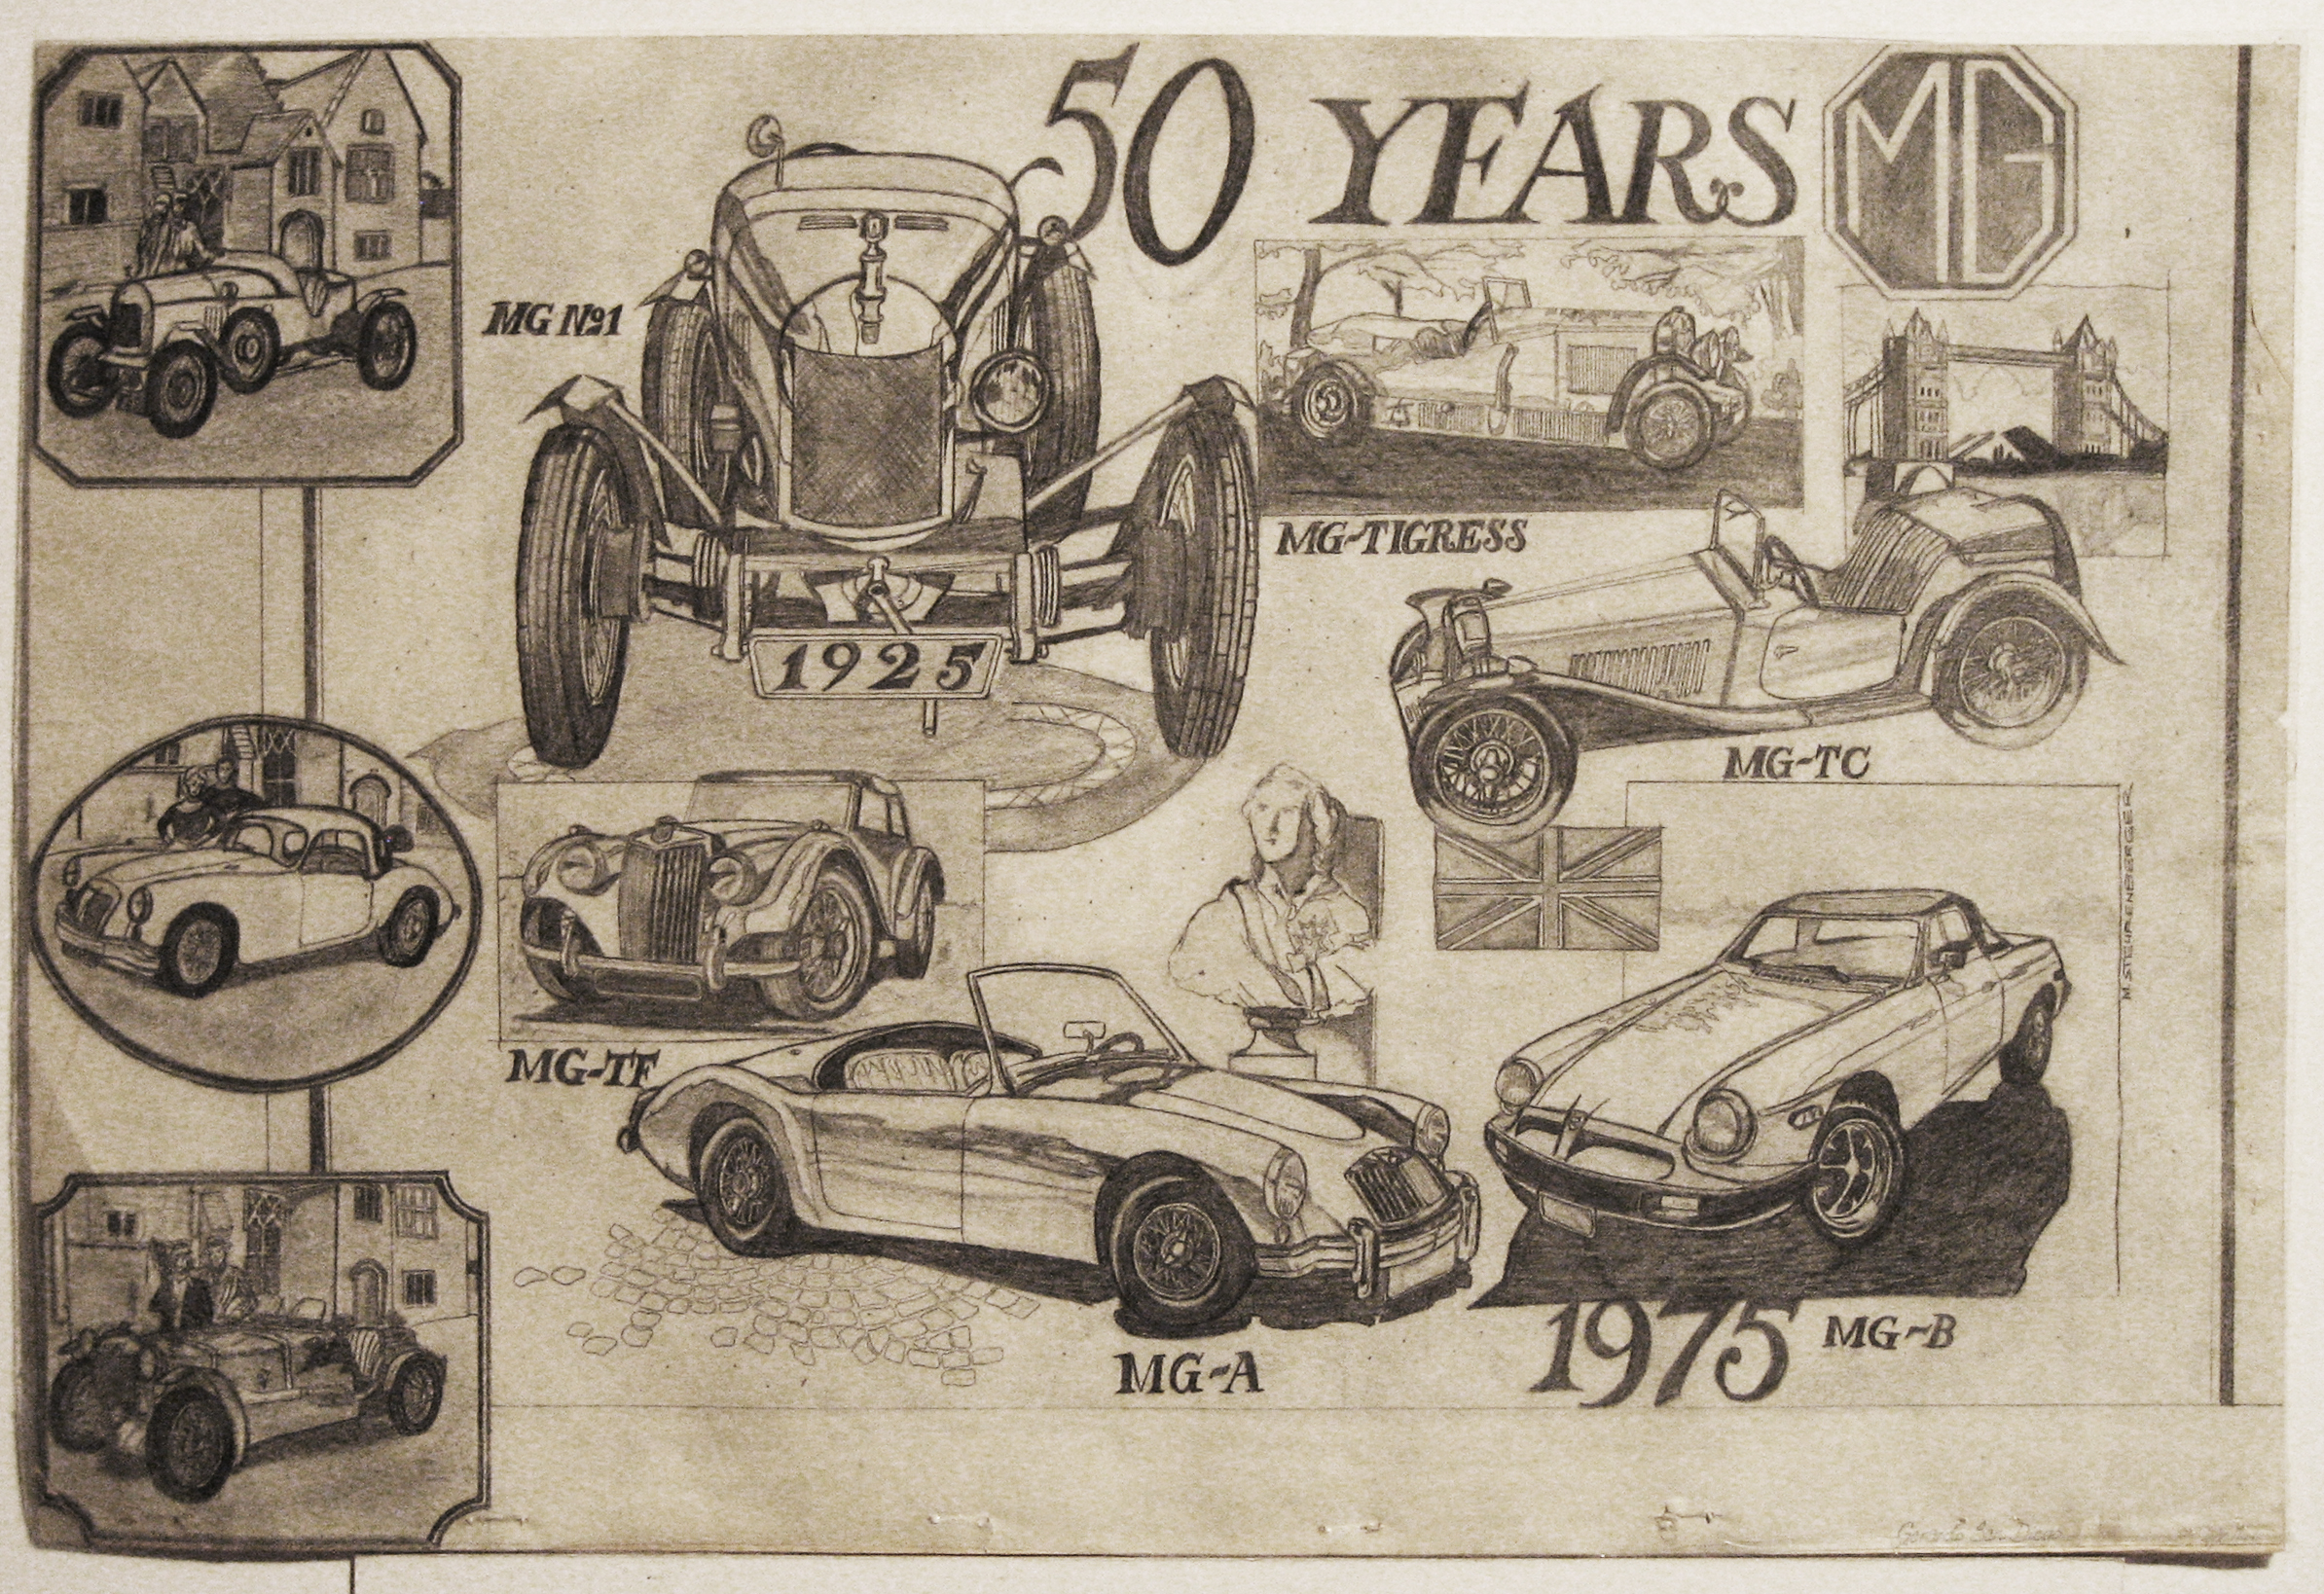 50 Years of MG Auto – Illustration